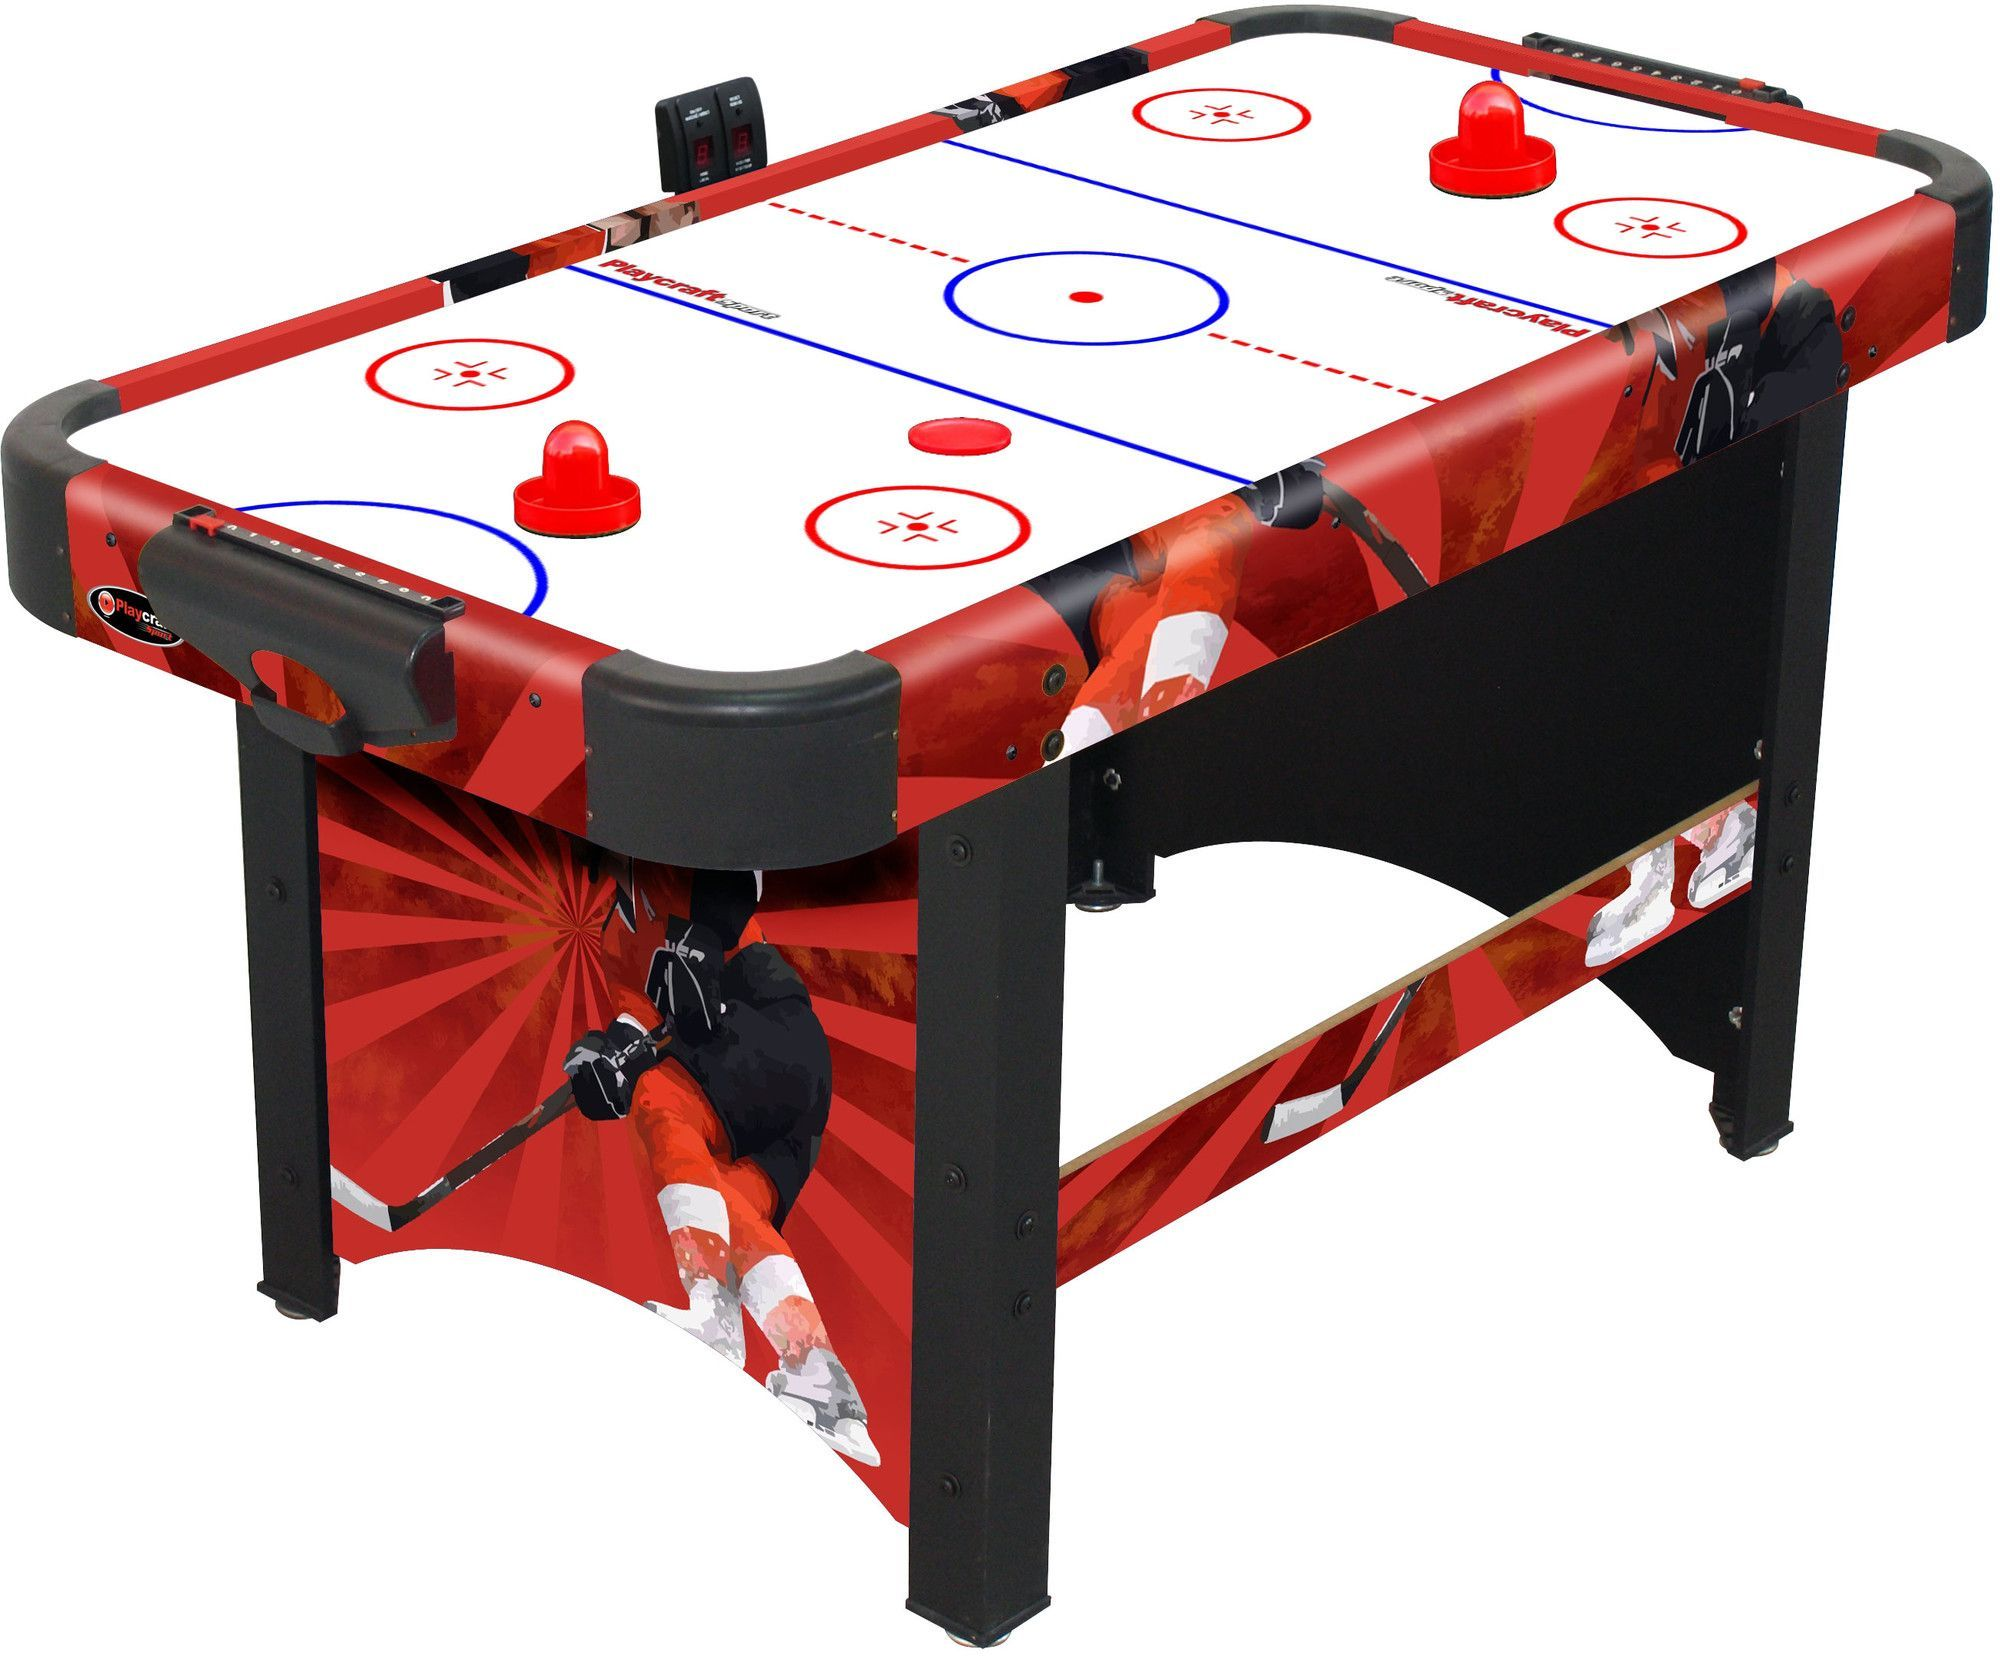 die besten 25 airhockey tisch ideen auf pinterest hockey pool airhockey spiele und spiele. Black Bedroom Furniture Sets. Home Design Ideas